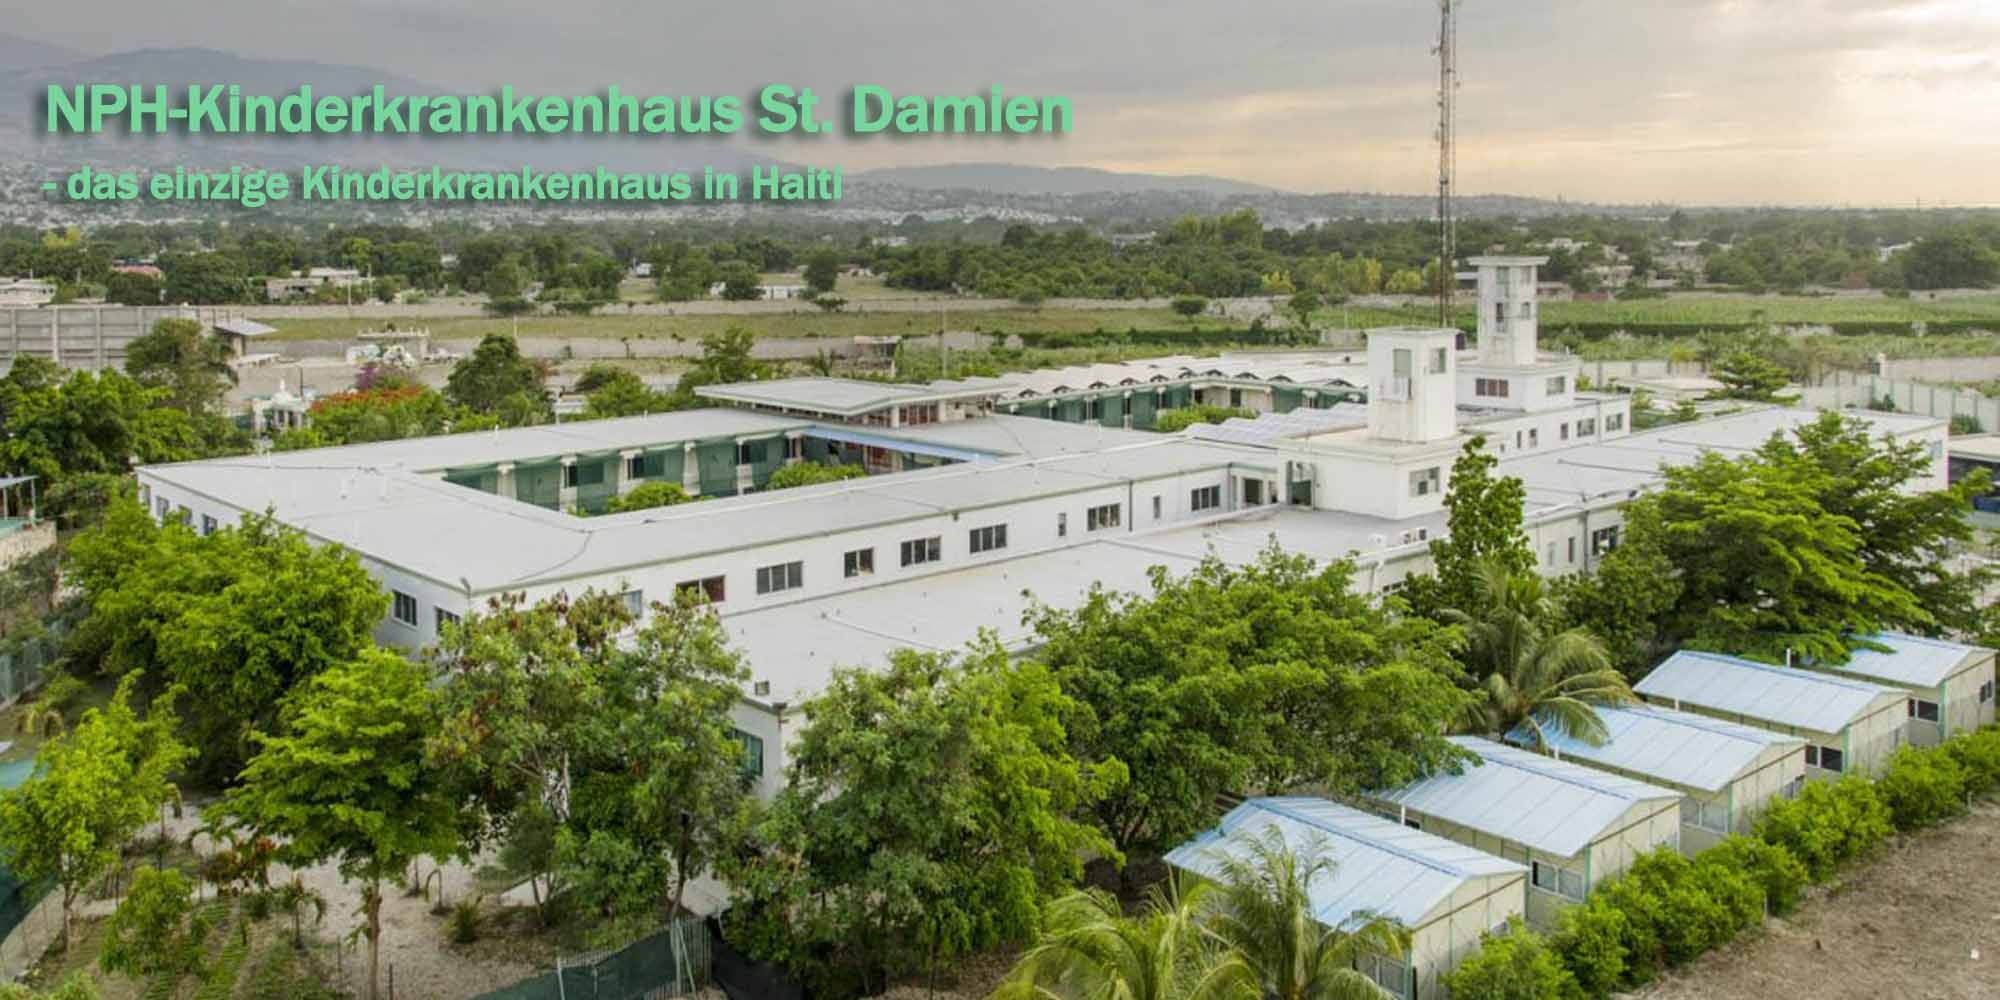 "Kinderhilfswerk NPH feiert 65-Jahre-Jubiläum mit Österreich-Premiere von ""The Land of the High Moutains"" über das Kinderkrankenhaus in Haiti."